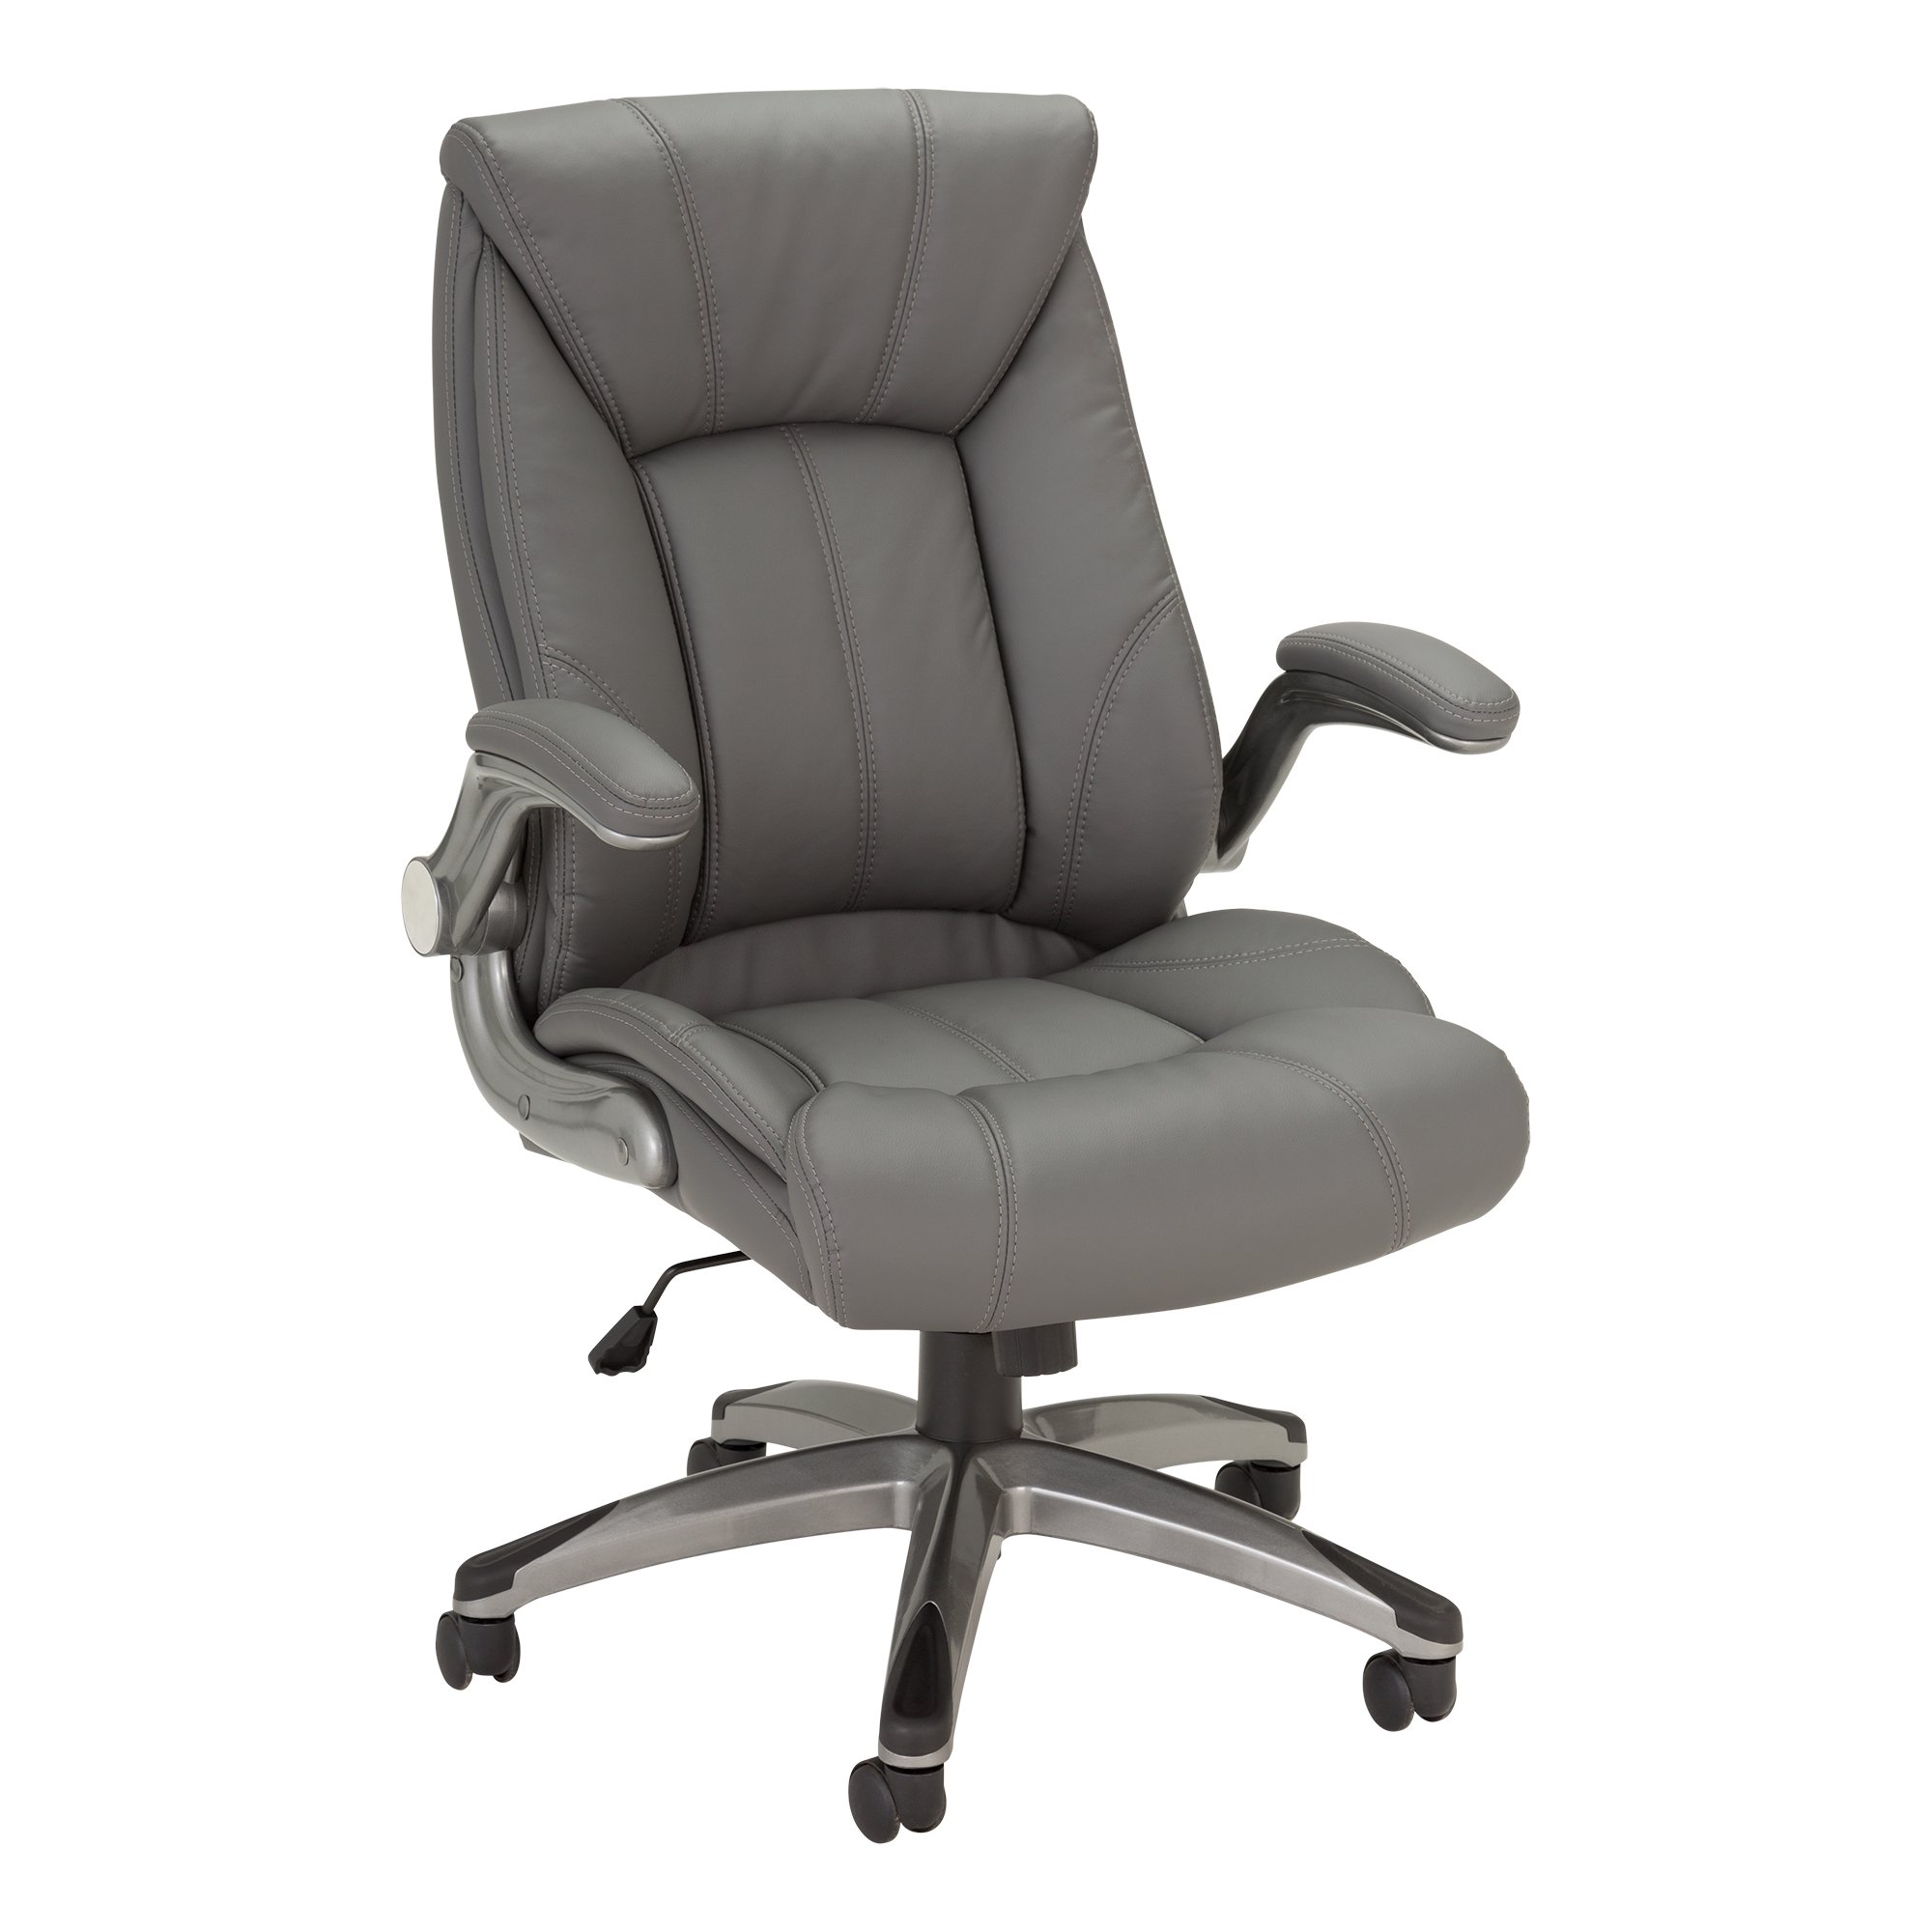 Norwood Commercial Furniture  Executive Chair with Flip-Up Arms, Gray, NOR-OUG1041GR-SO